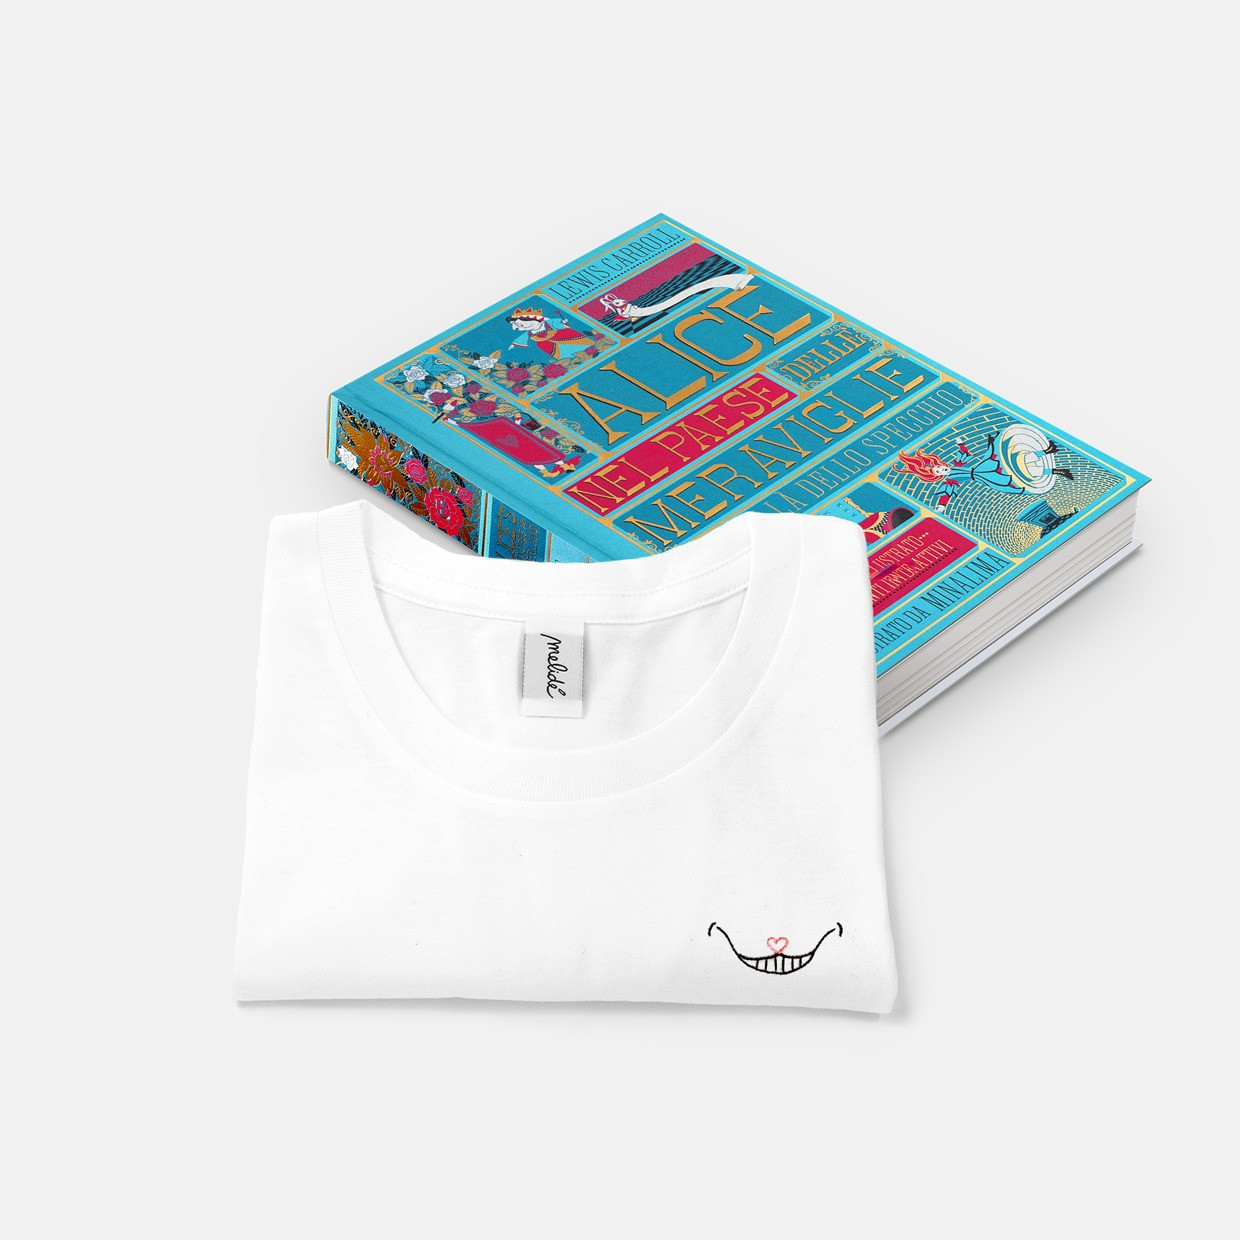 T-shirt Stregatto + libro pop-up